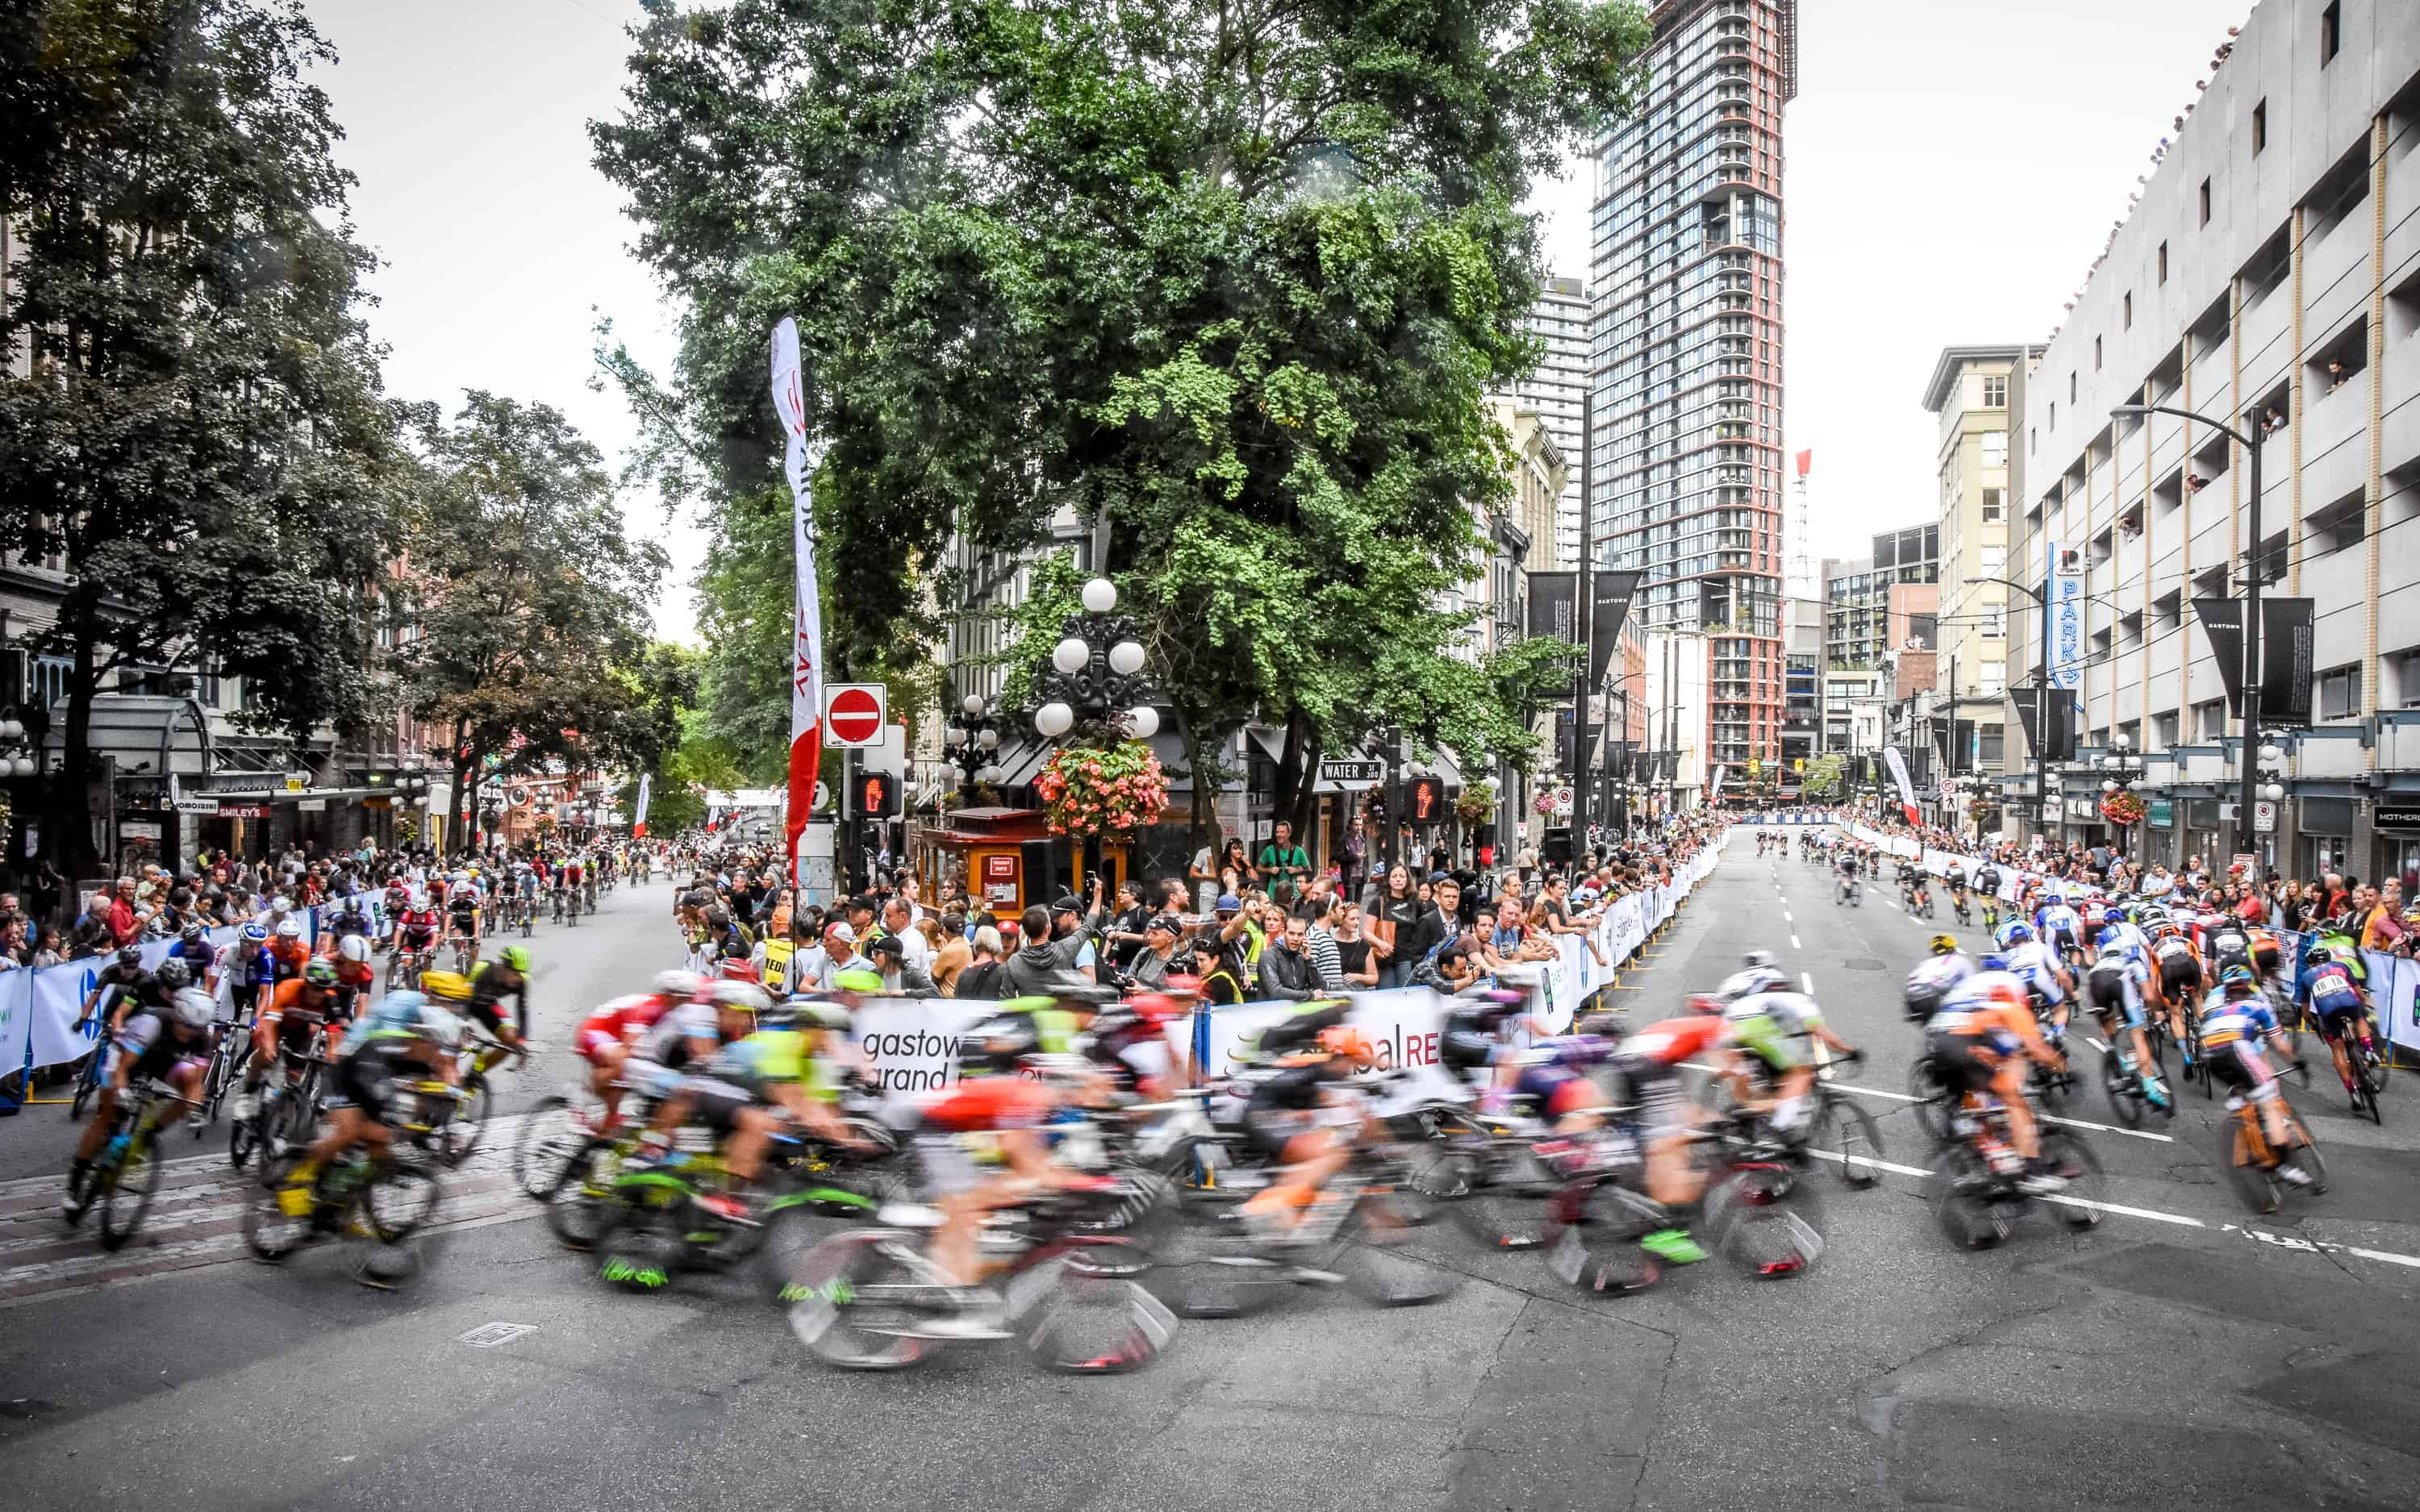 gastown grand prix cycling